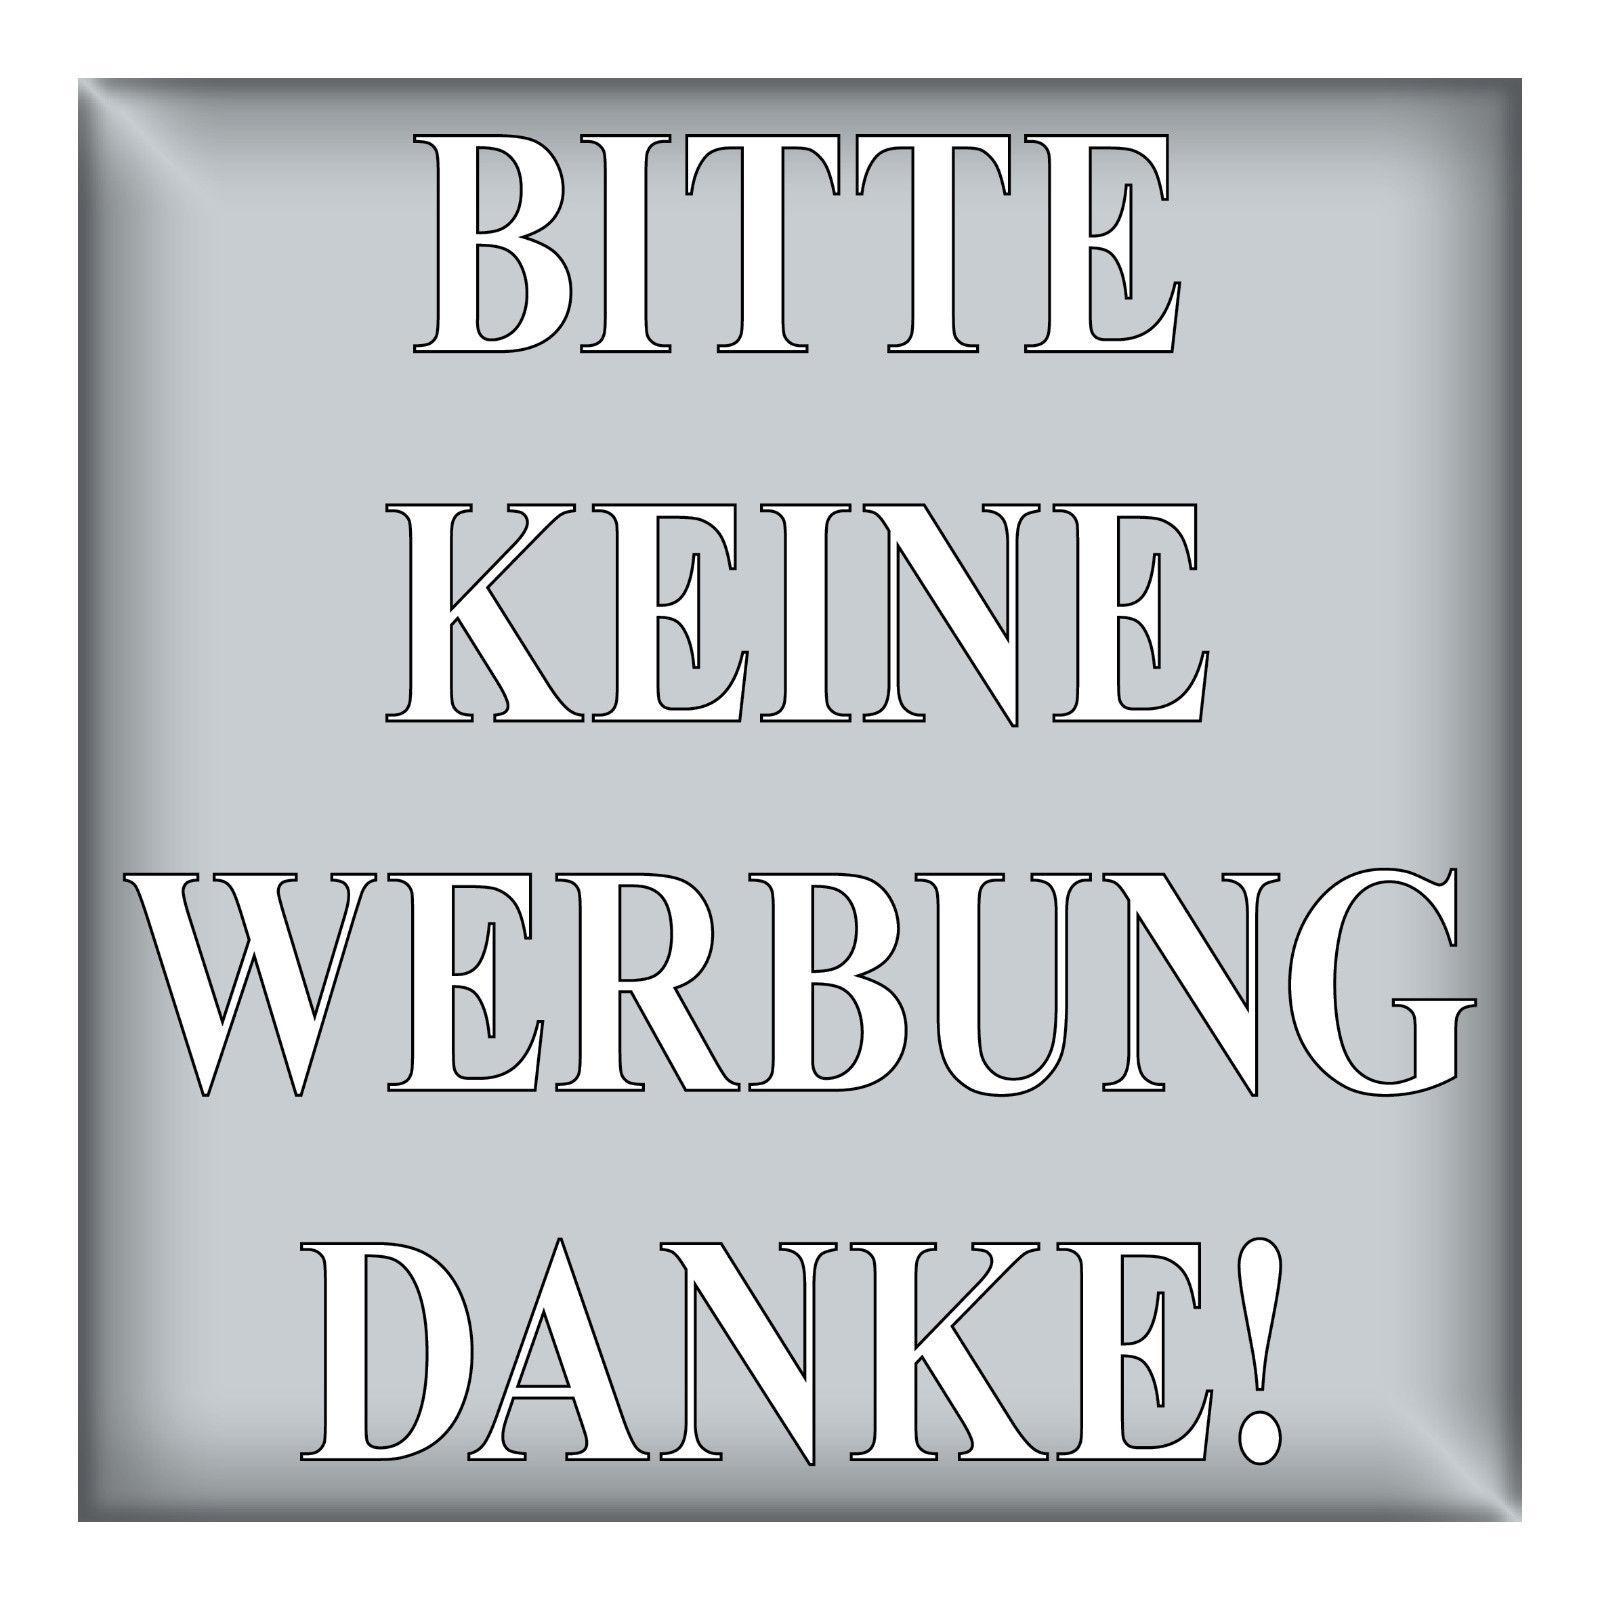 100 aufkleber sticker briefkasten bitte keine werbung danke 5cm x 5cm silber kaufen bei green it. Black Bedroom Furniture Sets. Home Design Ideas